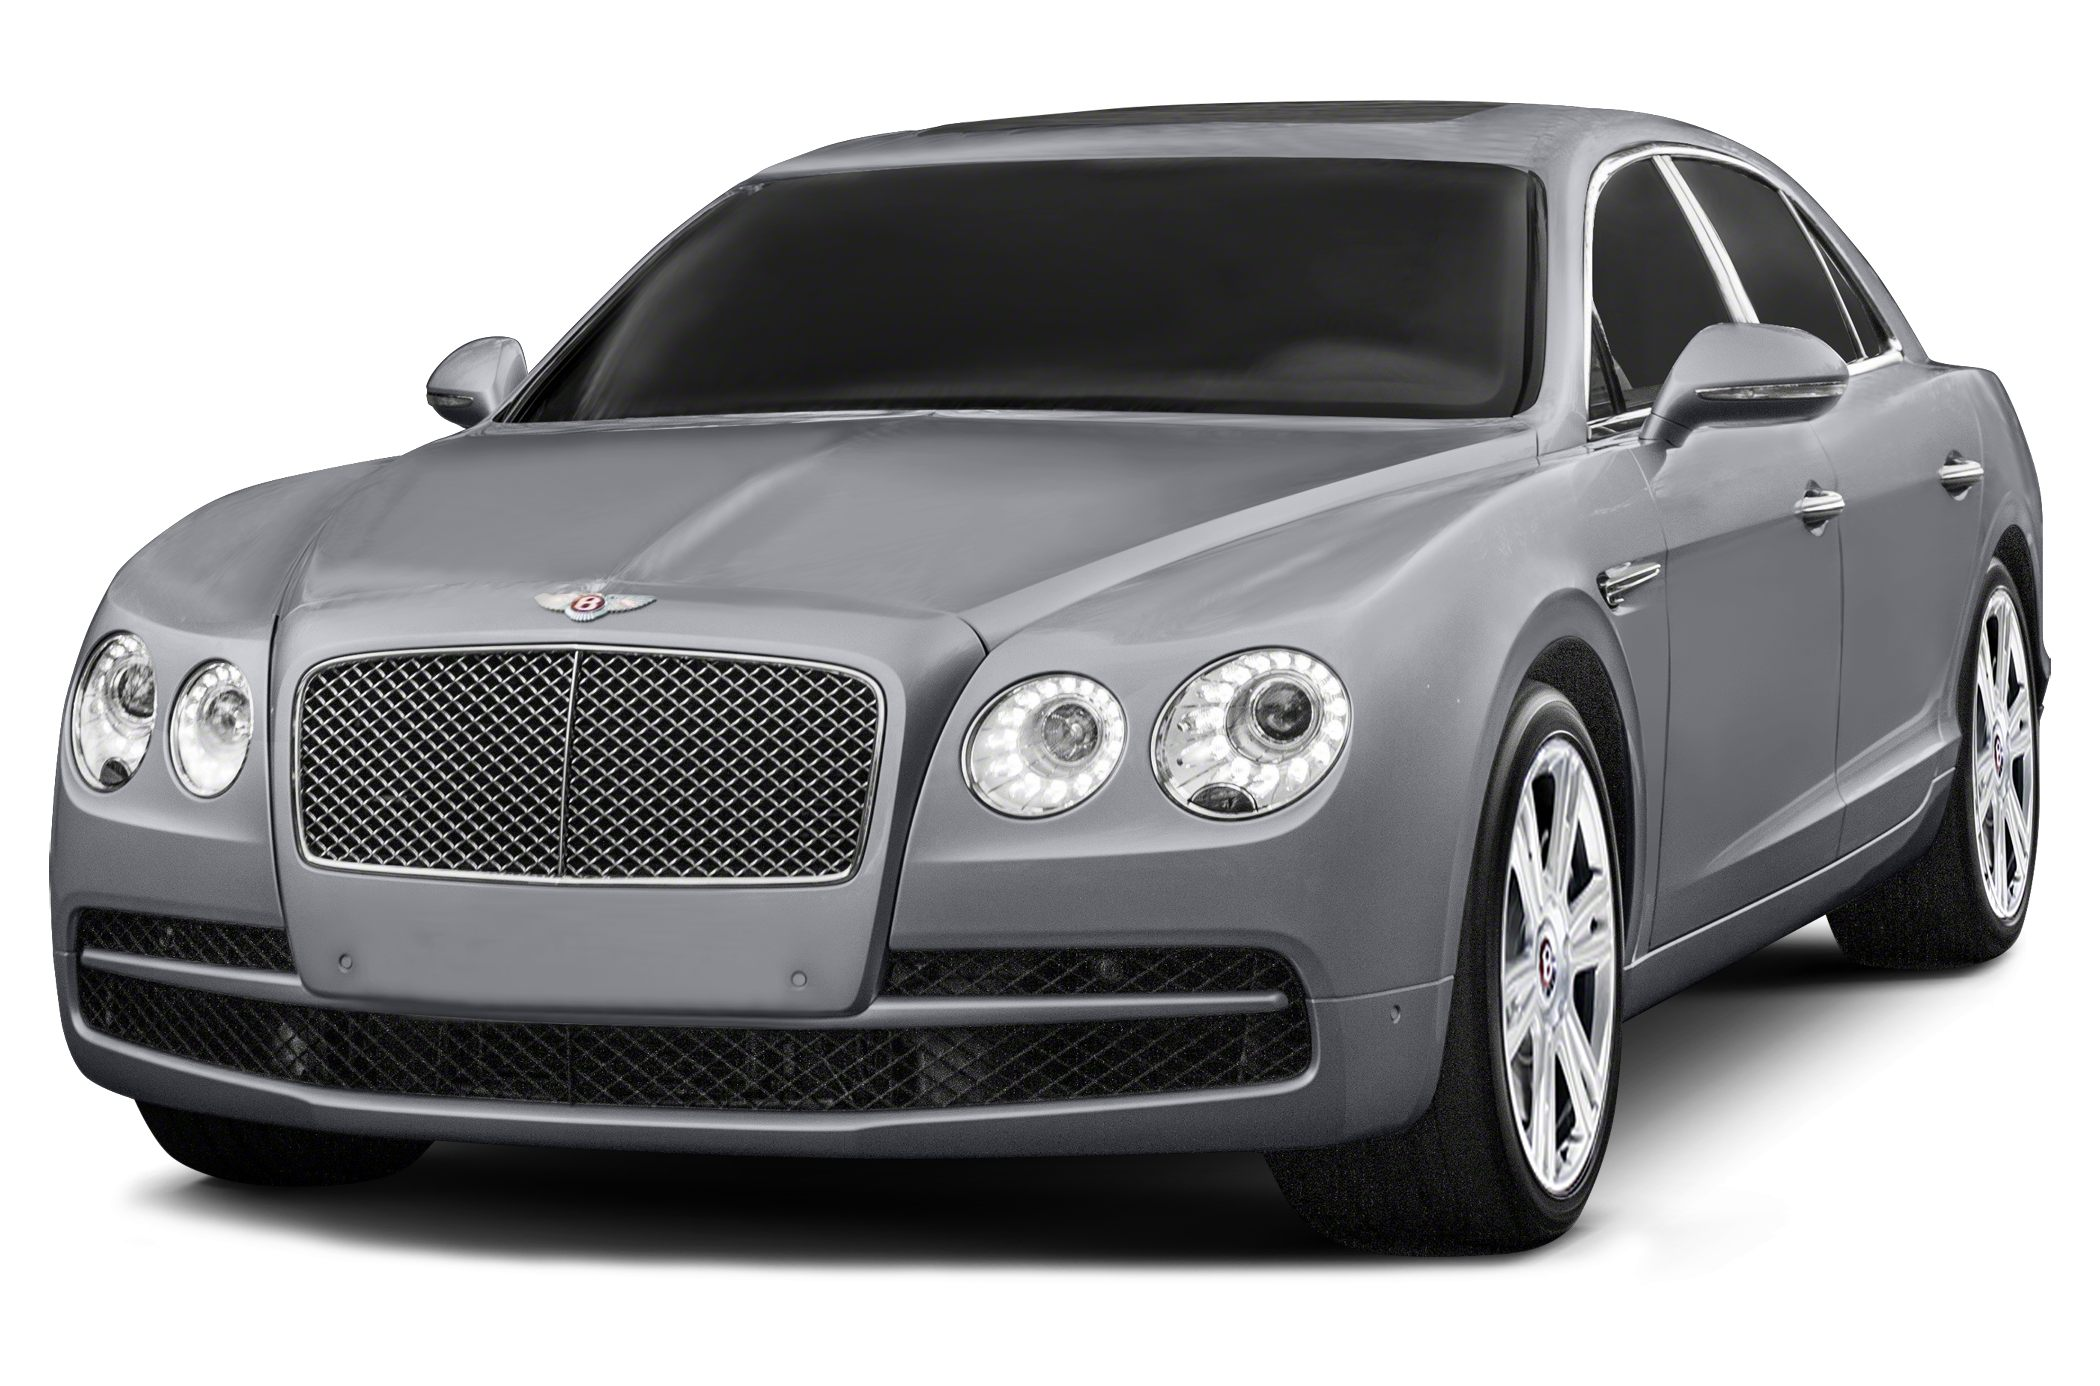 2015 Bentley Flying Spur V8 Sedan for sale in Miami for $221,640 with 16 miles